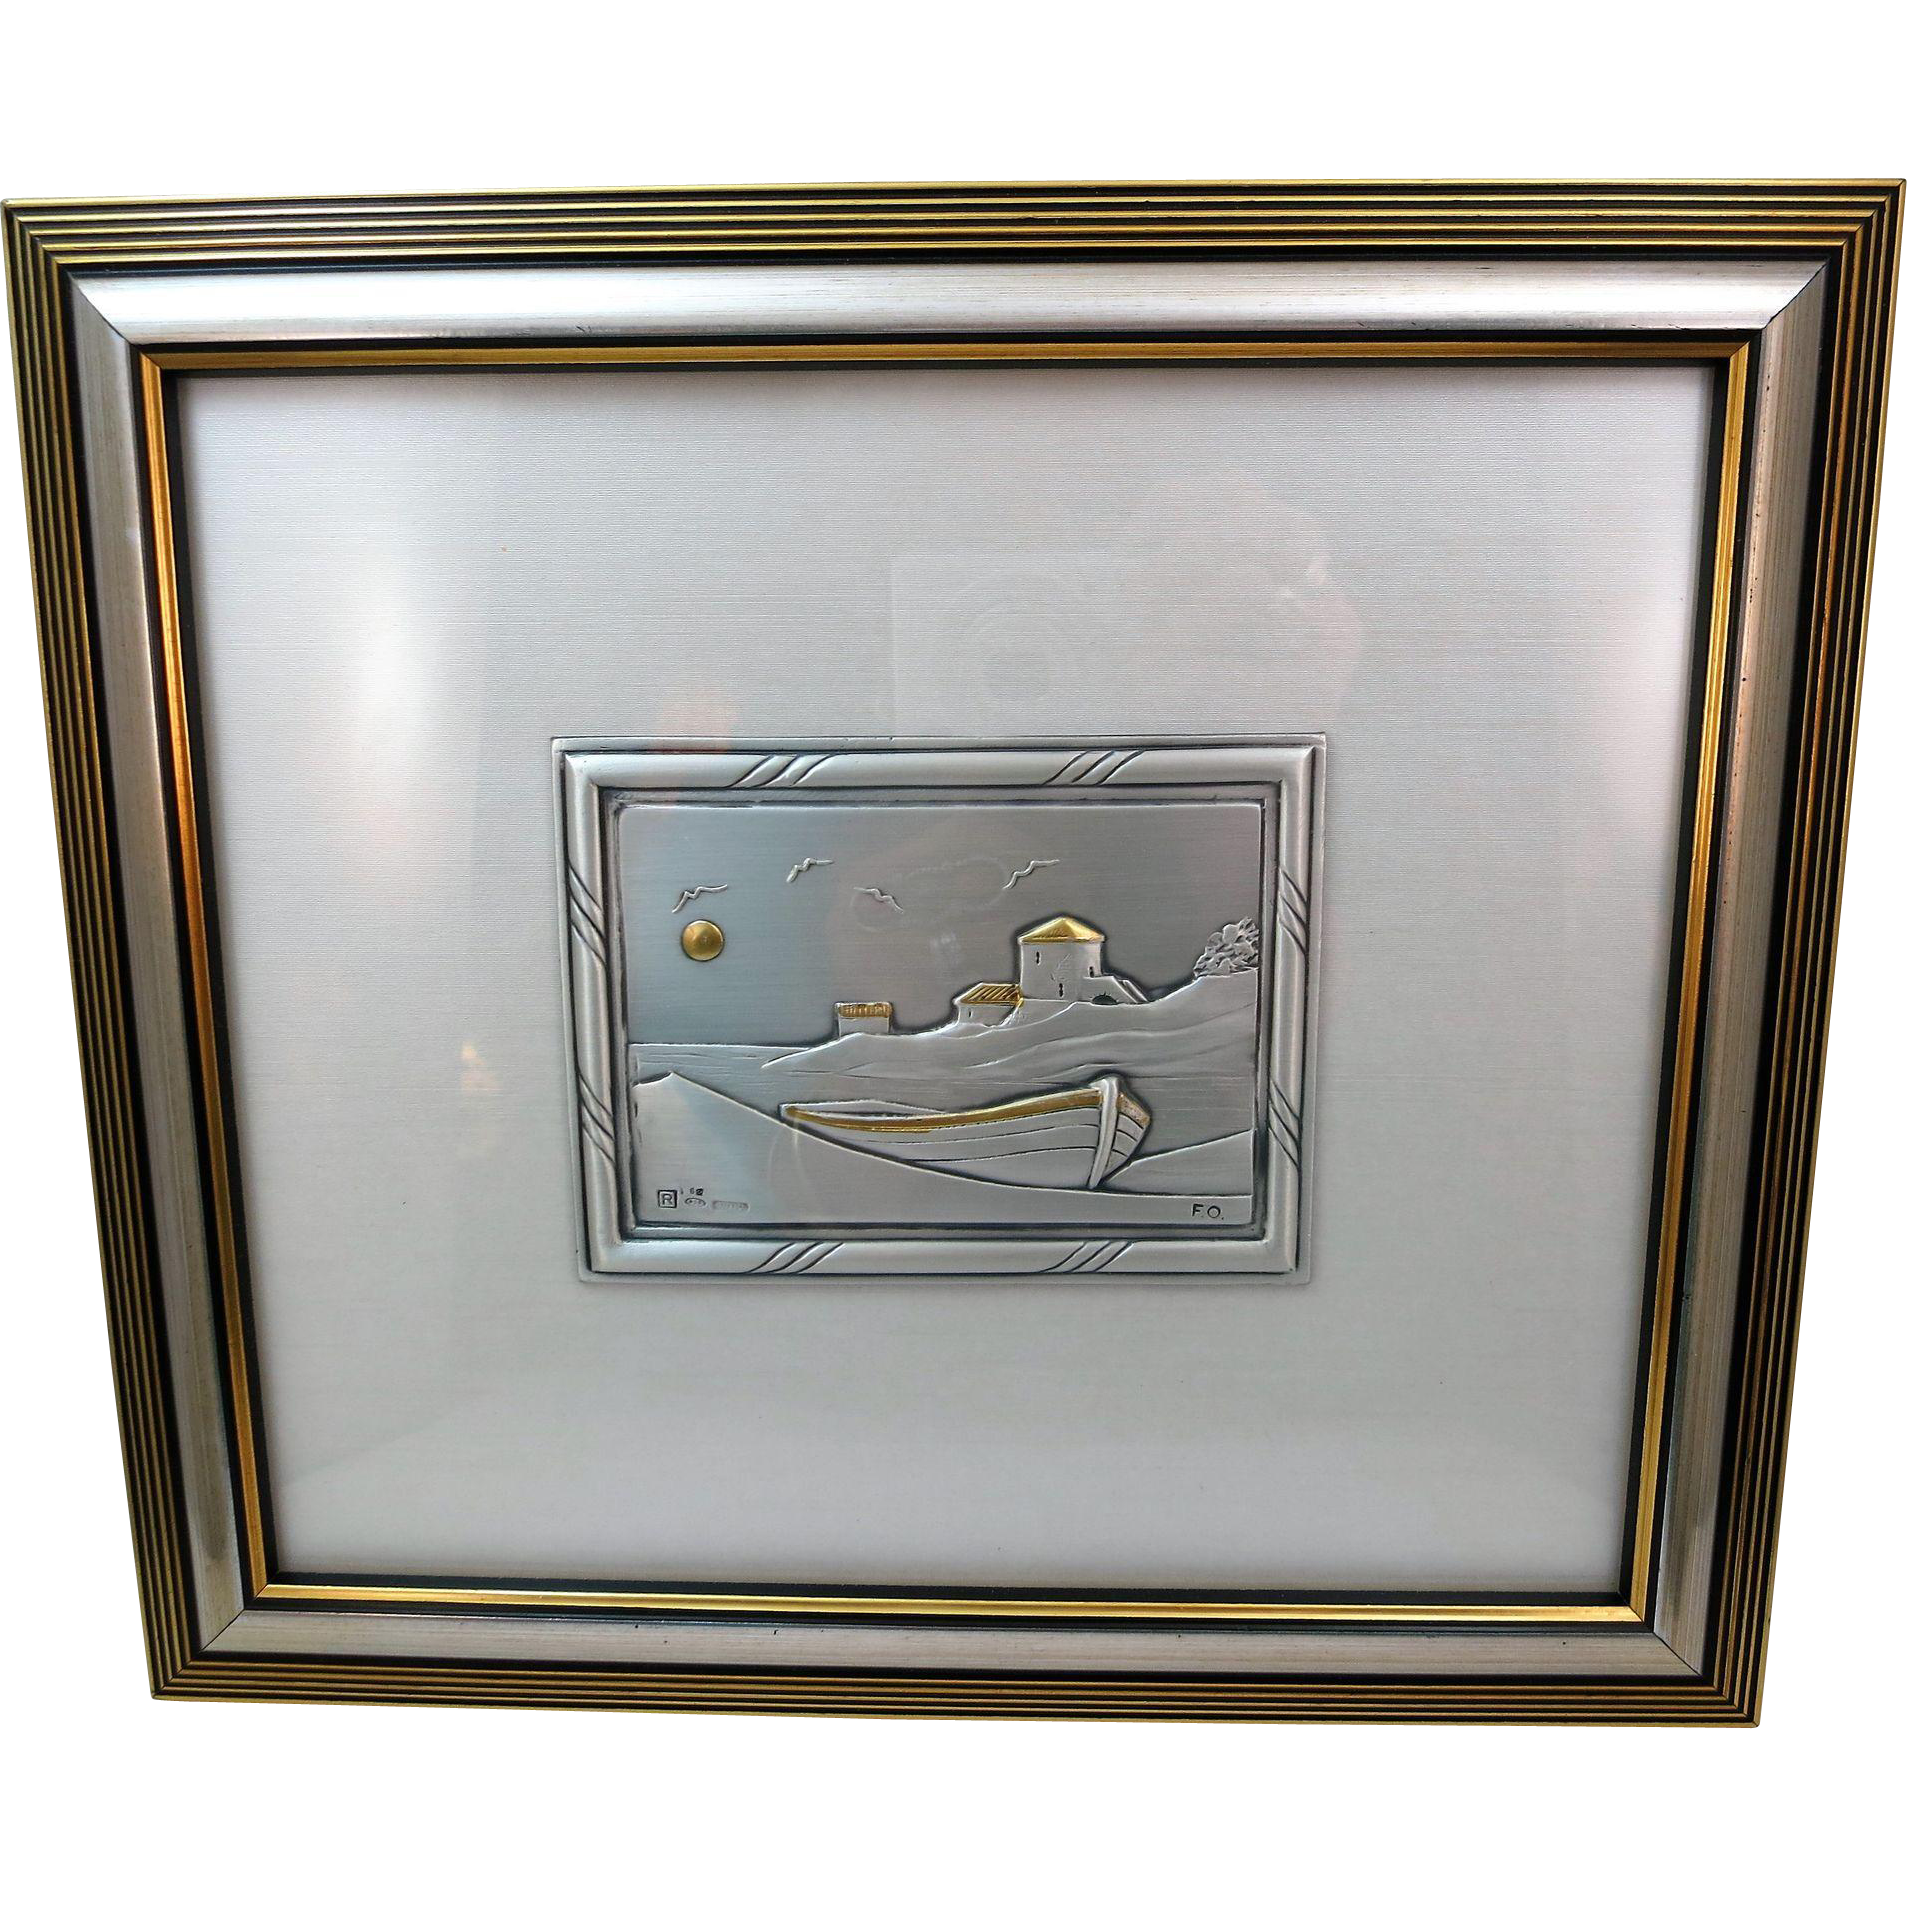 VINTAGE Italian Sterling Silver Art Work In Relief, Boat, Birds and Buildings Water 10 1/4 X 9 Inches